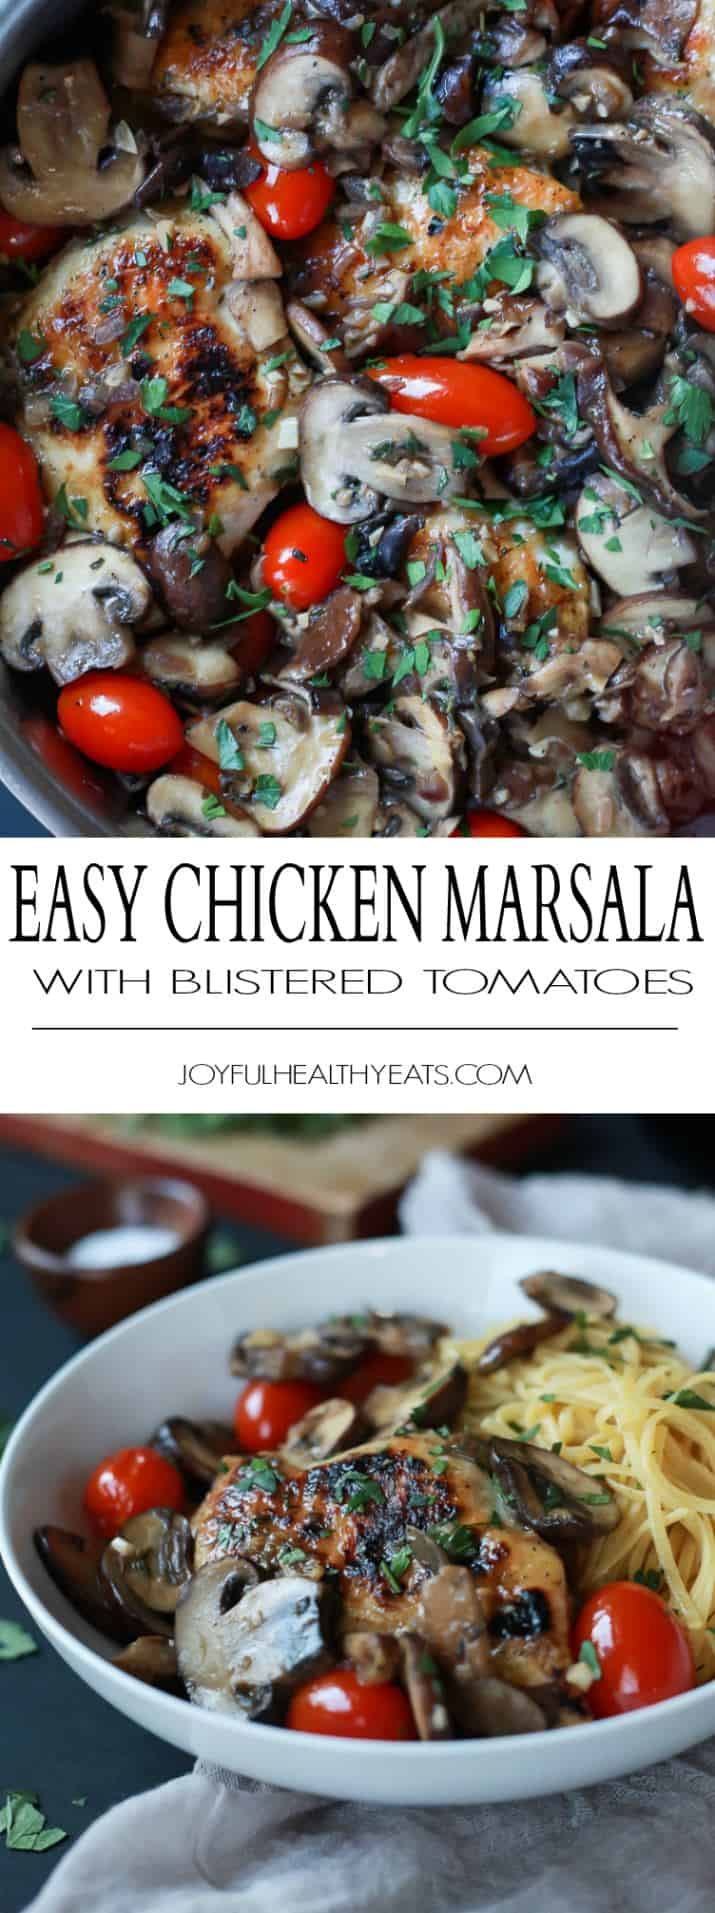 Easy Chicken Marsala cooked in butter and marsala wine then topped with Blistered Tomatoes. This dish is light, takes 30 minutes to make, is gluten free, under 350 calories, and is freakin tasty! | joyfulhealthyeats.com